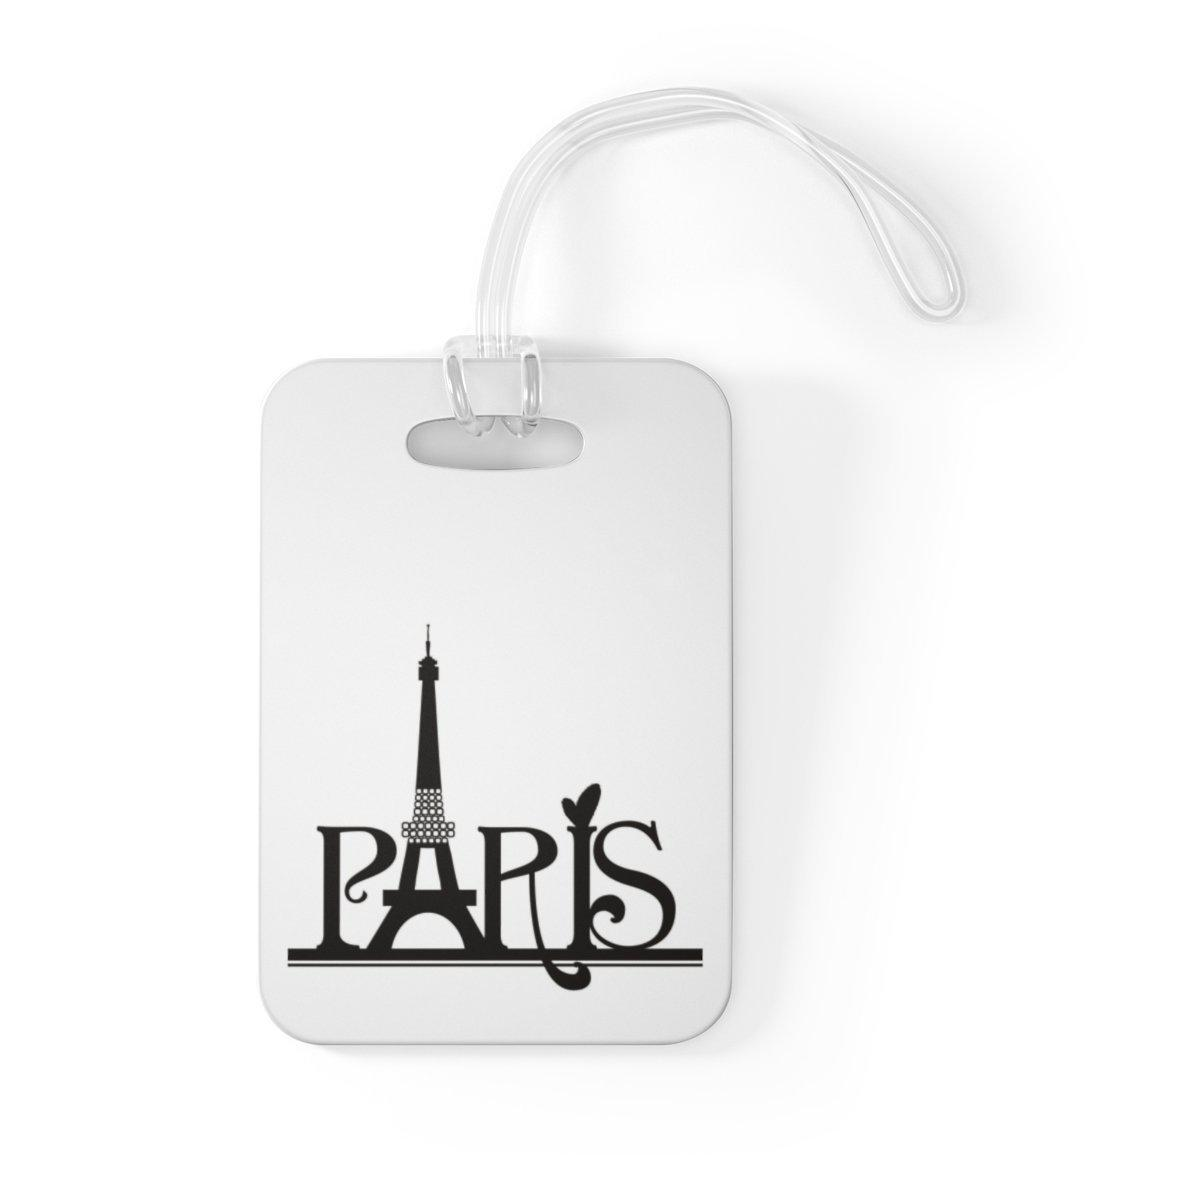 Maison d'Elite Paris Typo Luggage Tag-Luggage & Bags › Travel Accessories › Luggage Tags-Maison d'Elite-One Size-Très Elite